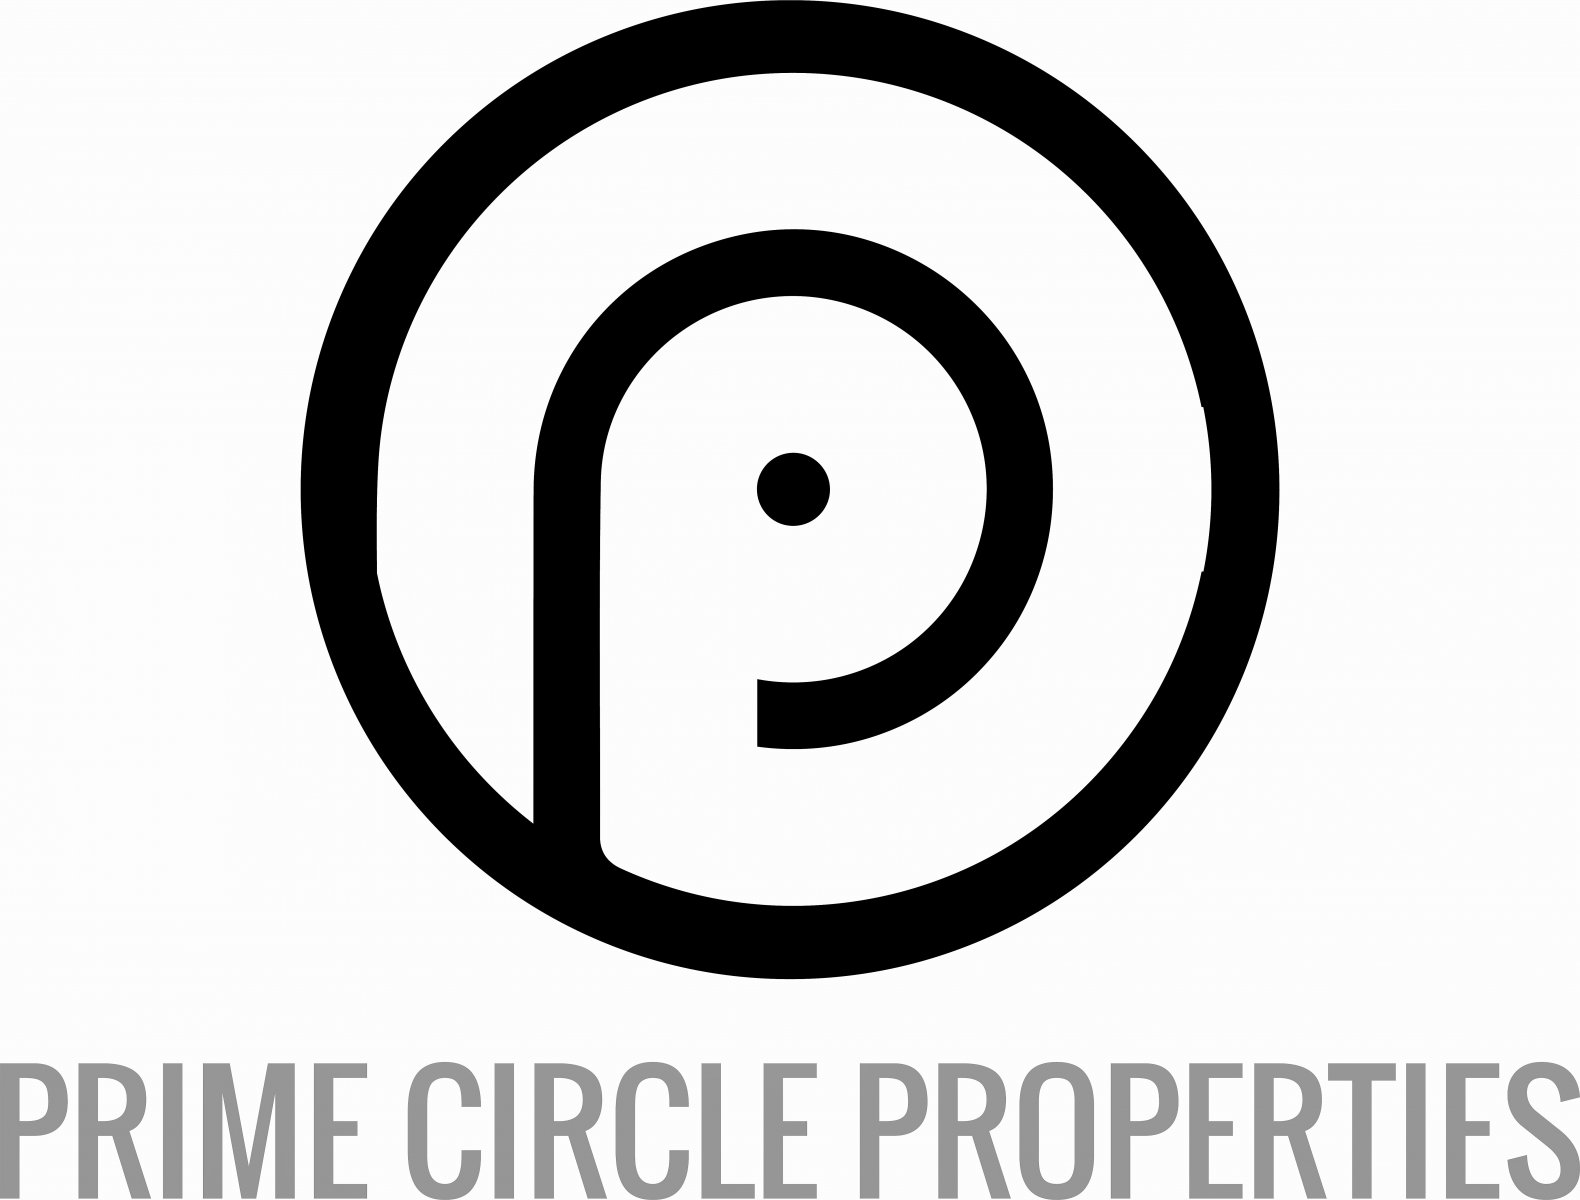 Prime Circle Properties  logo